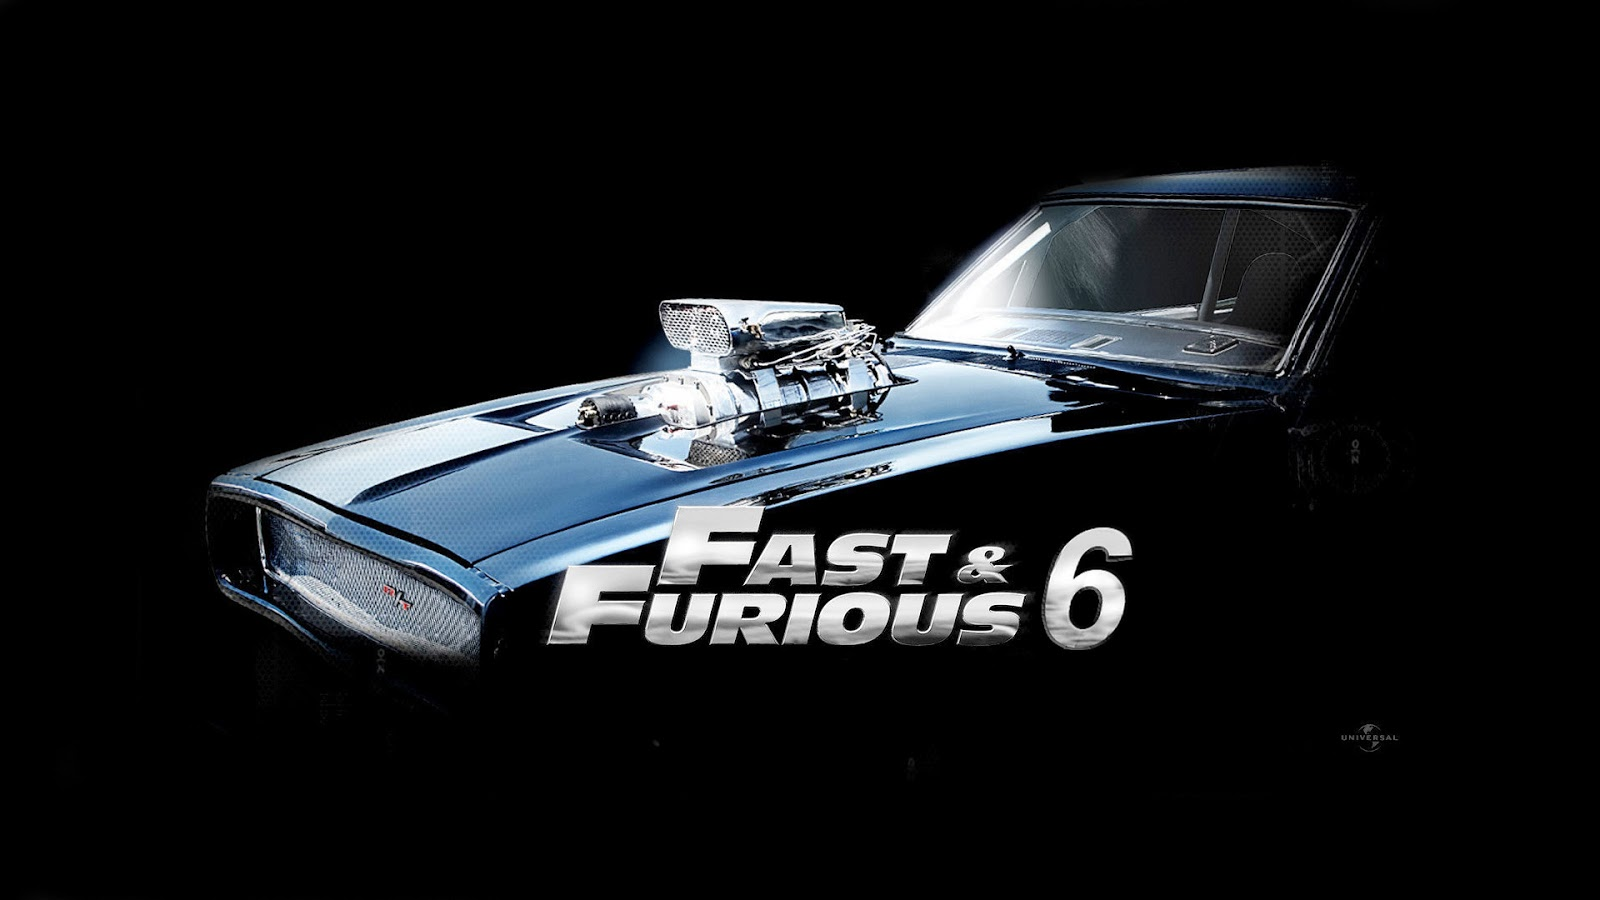 Fast and Furious 6 HD wallpapers 1080p HD Wallpapers High 1600x900